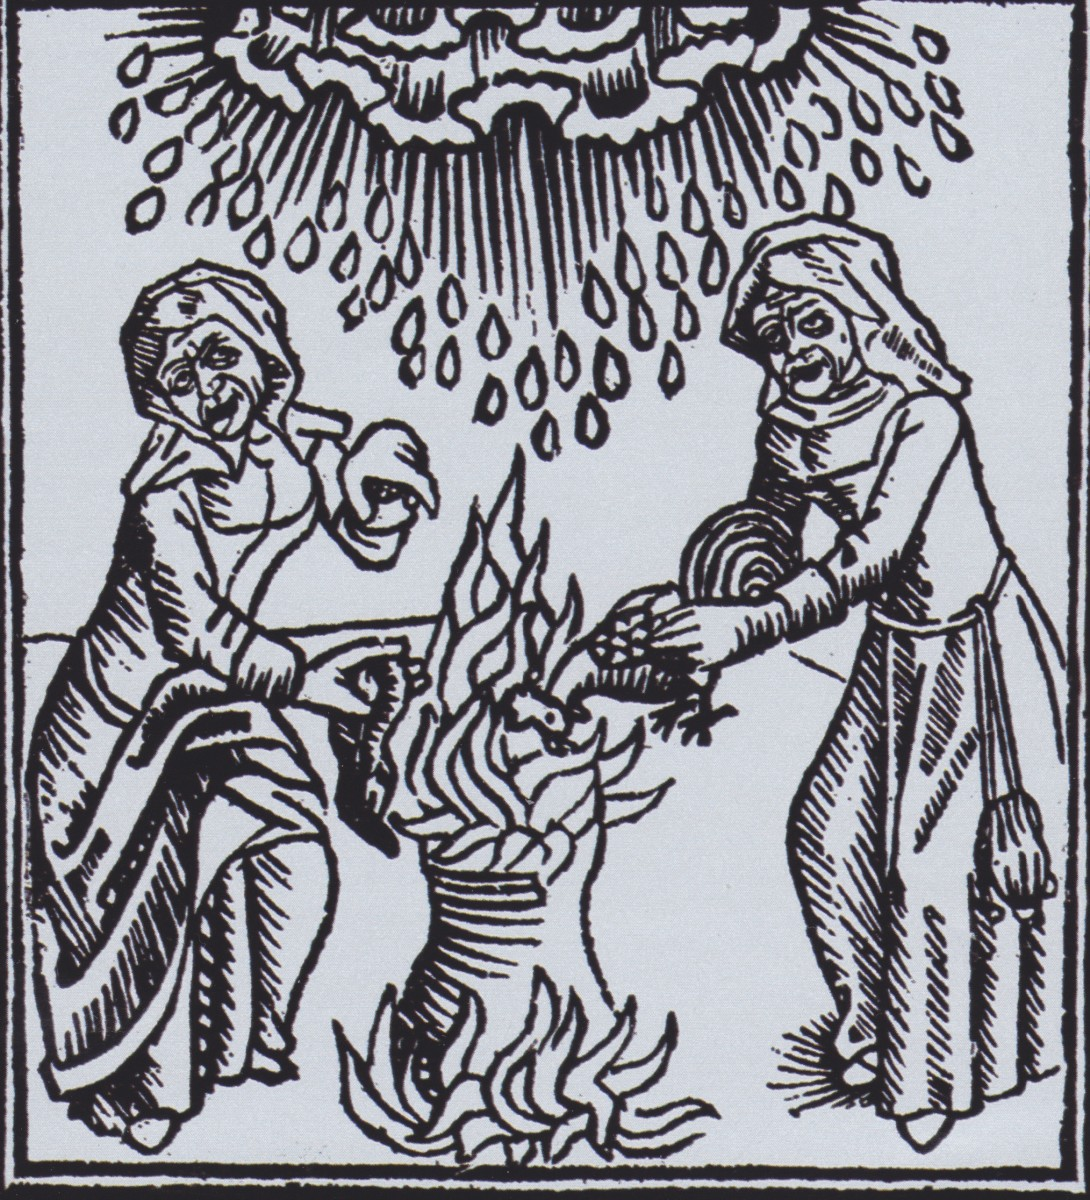 It was believed that witches could control the weather.